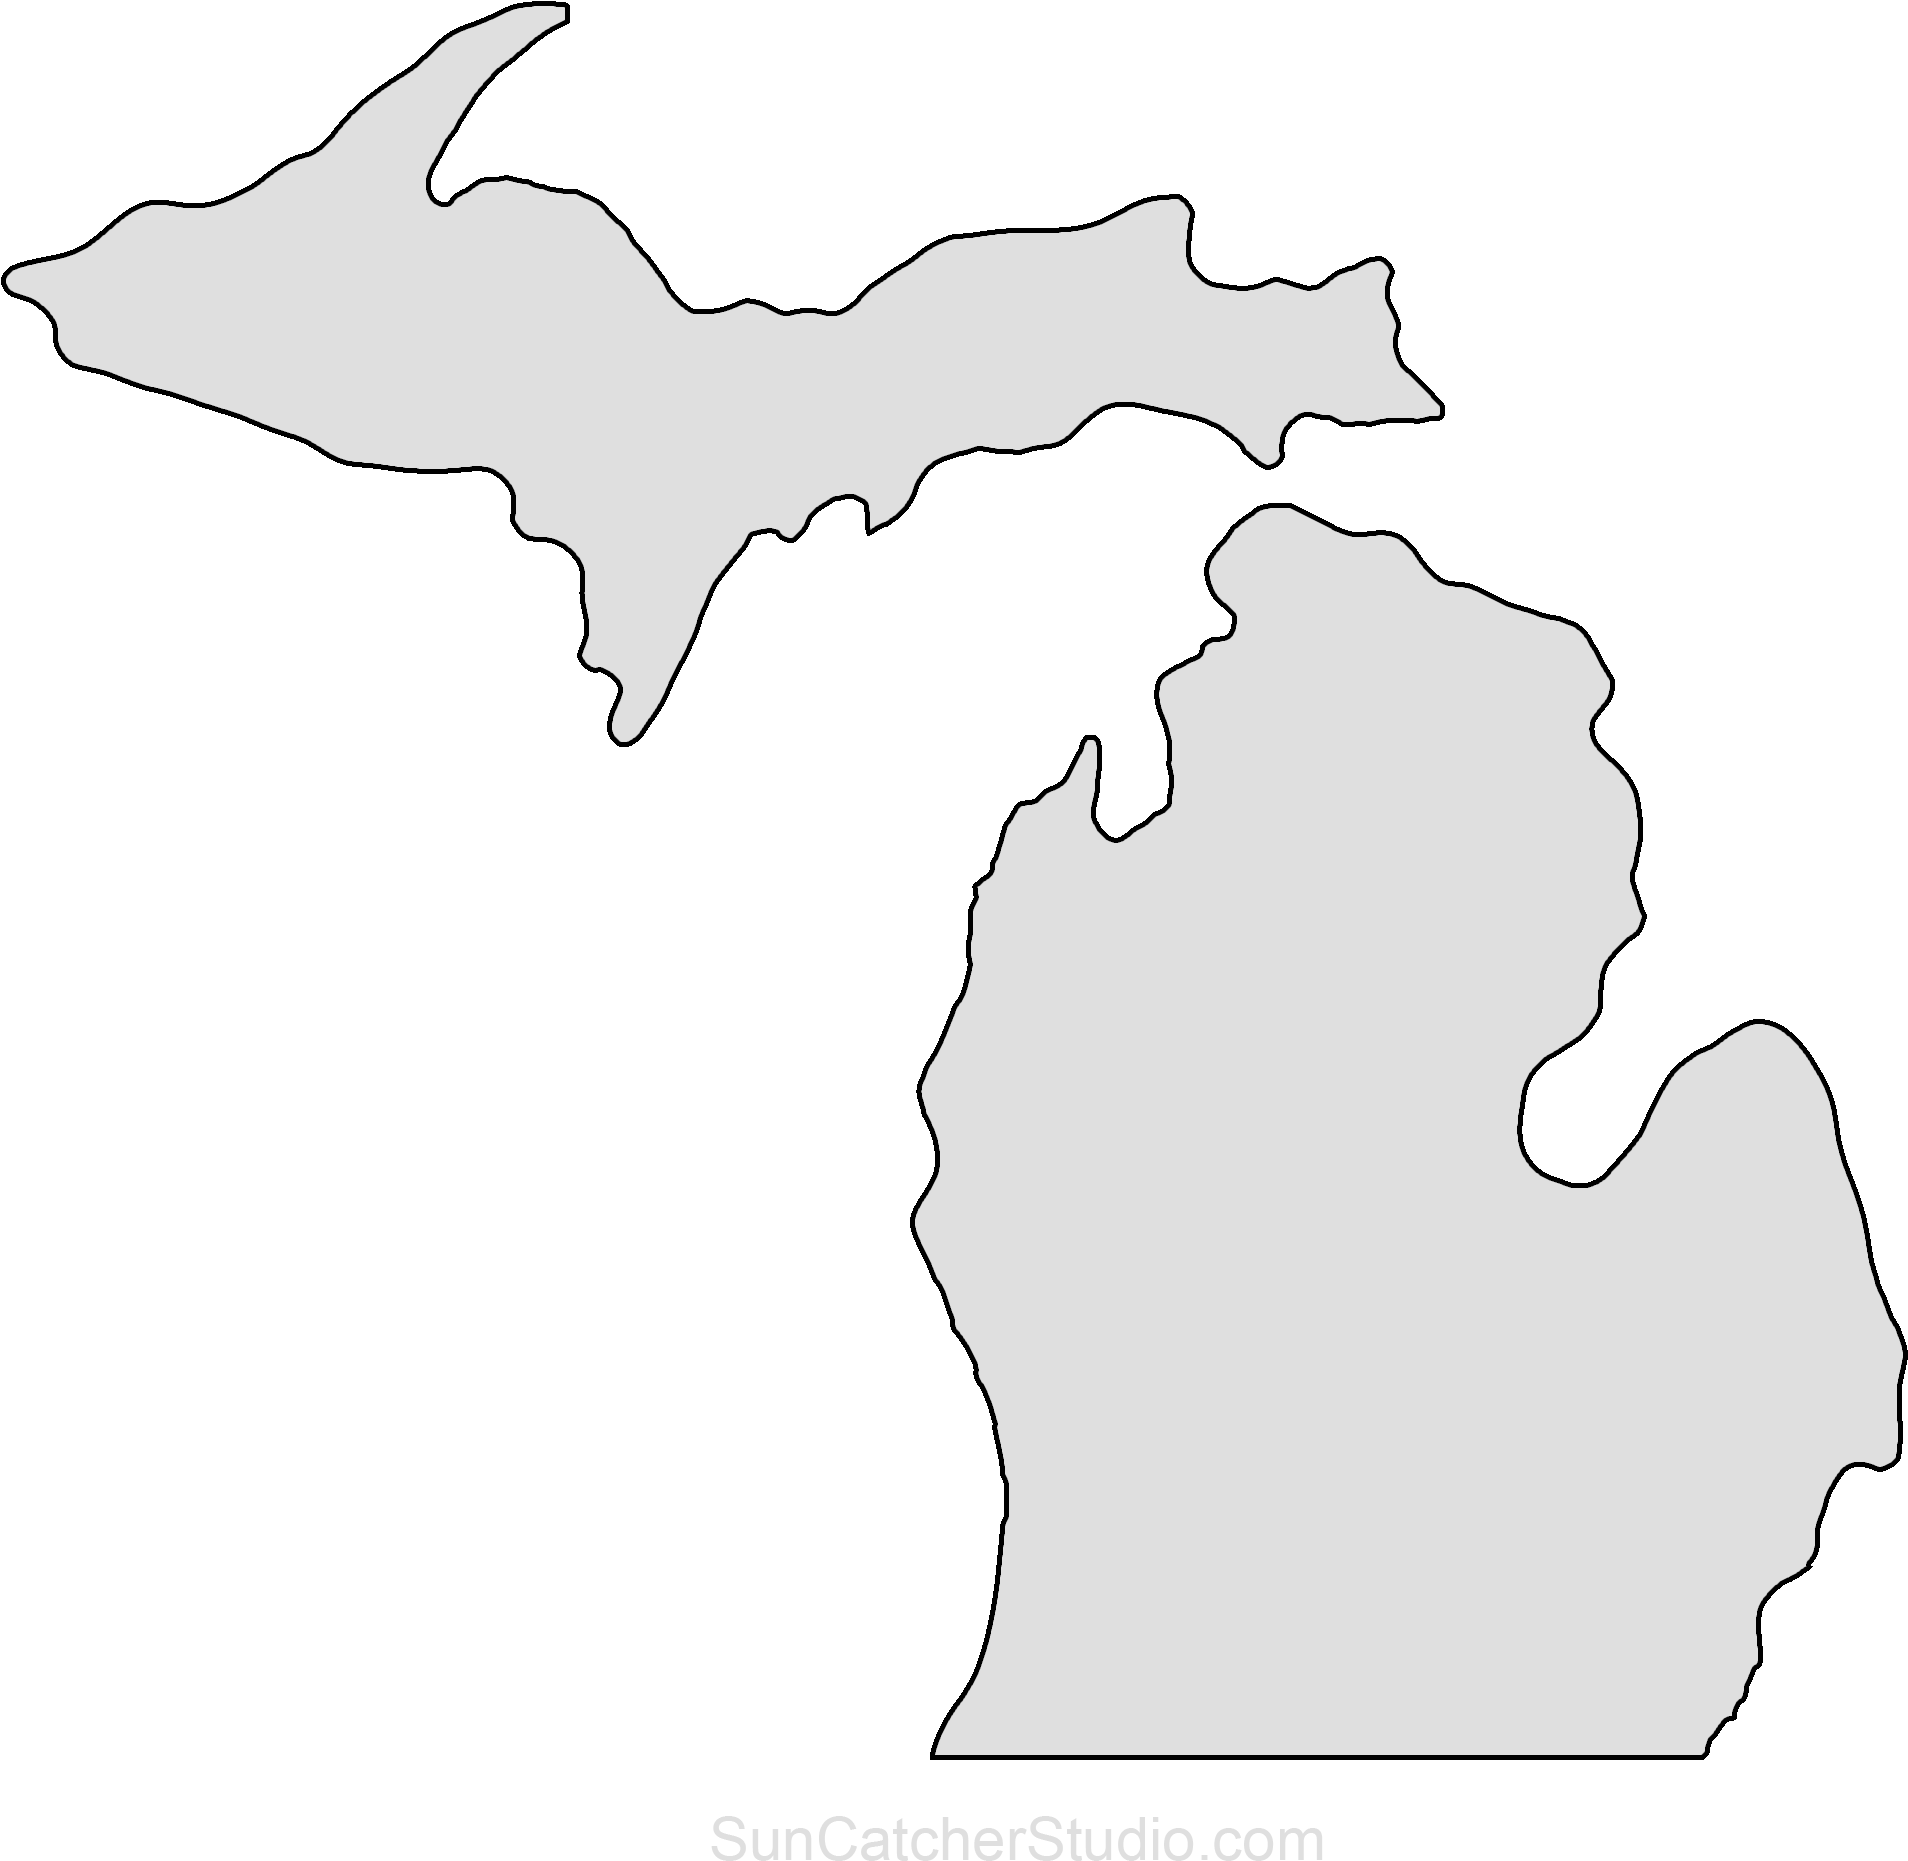 outline of michigan michigan blank map michigan of outline